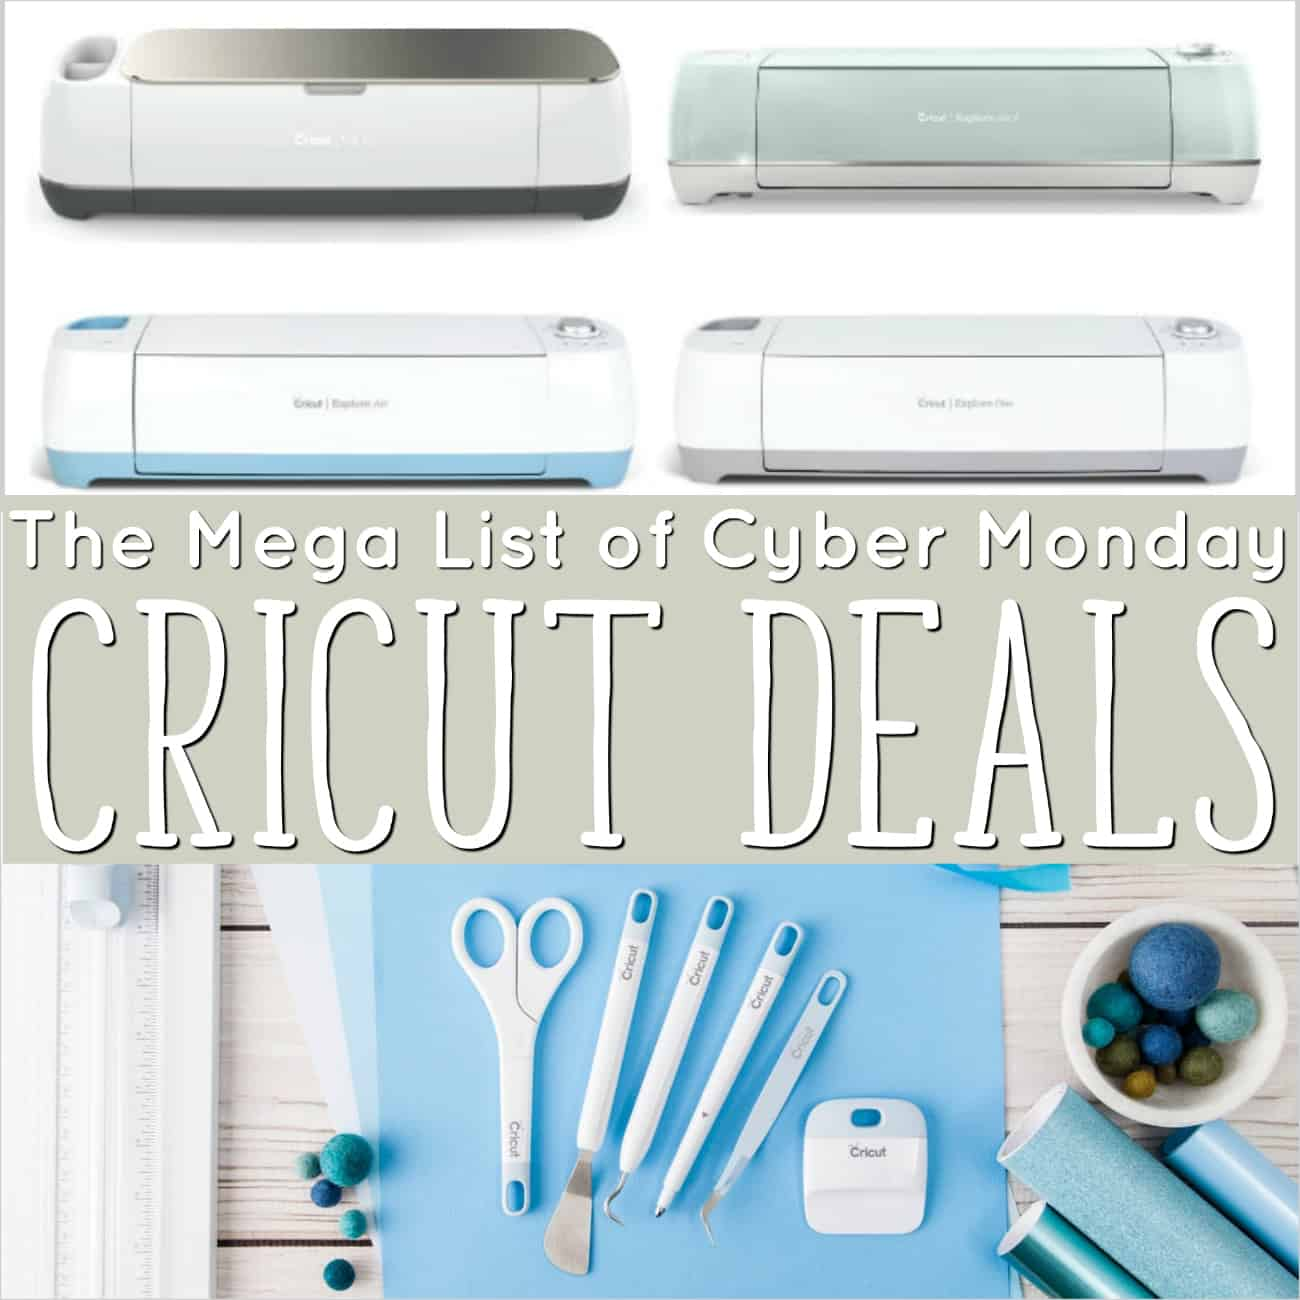 Cricut Cyber Monday 2018 deals